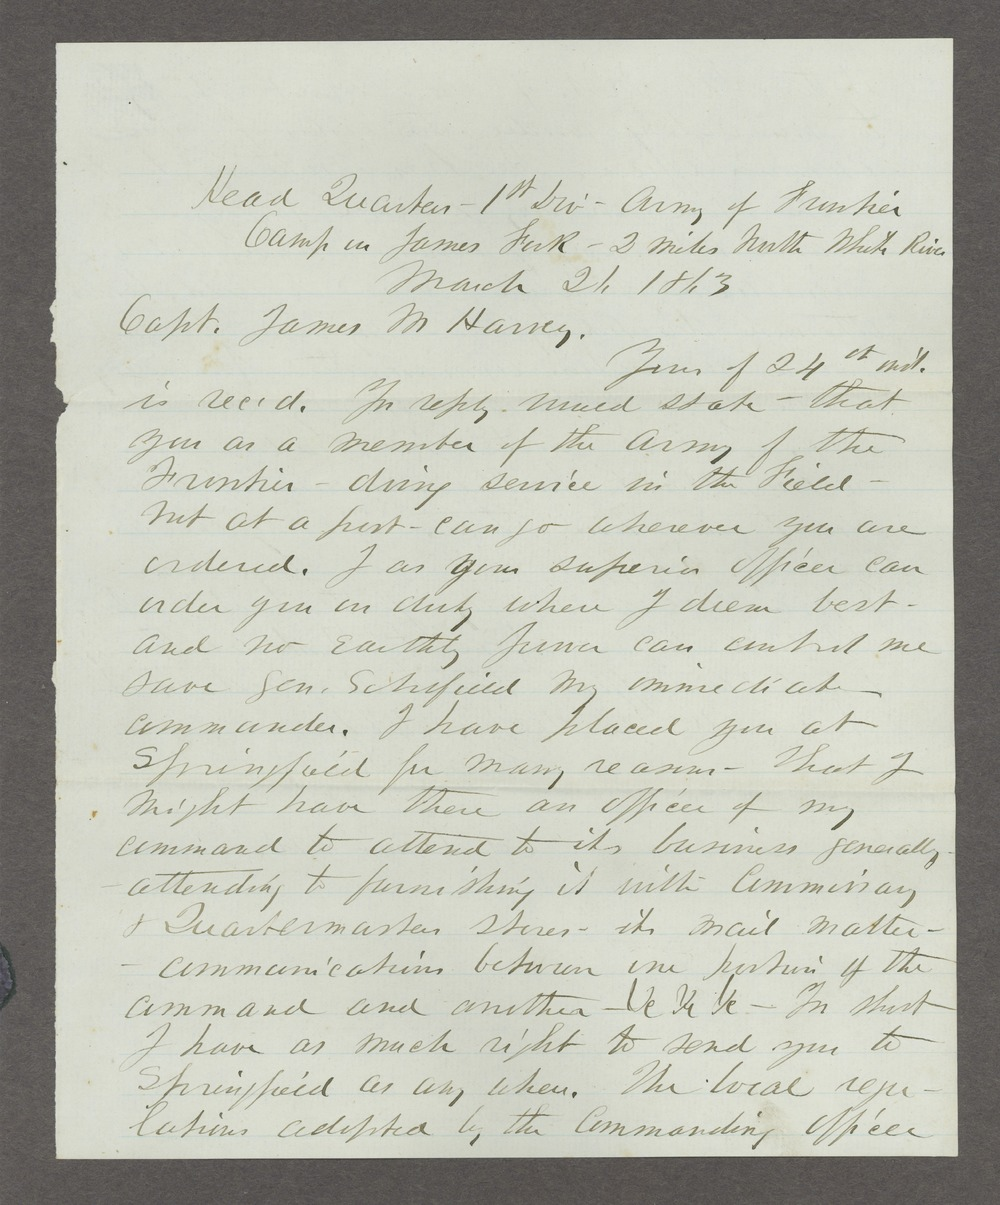 James Madison Harvey correspondence - 11